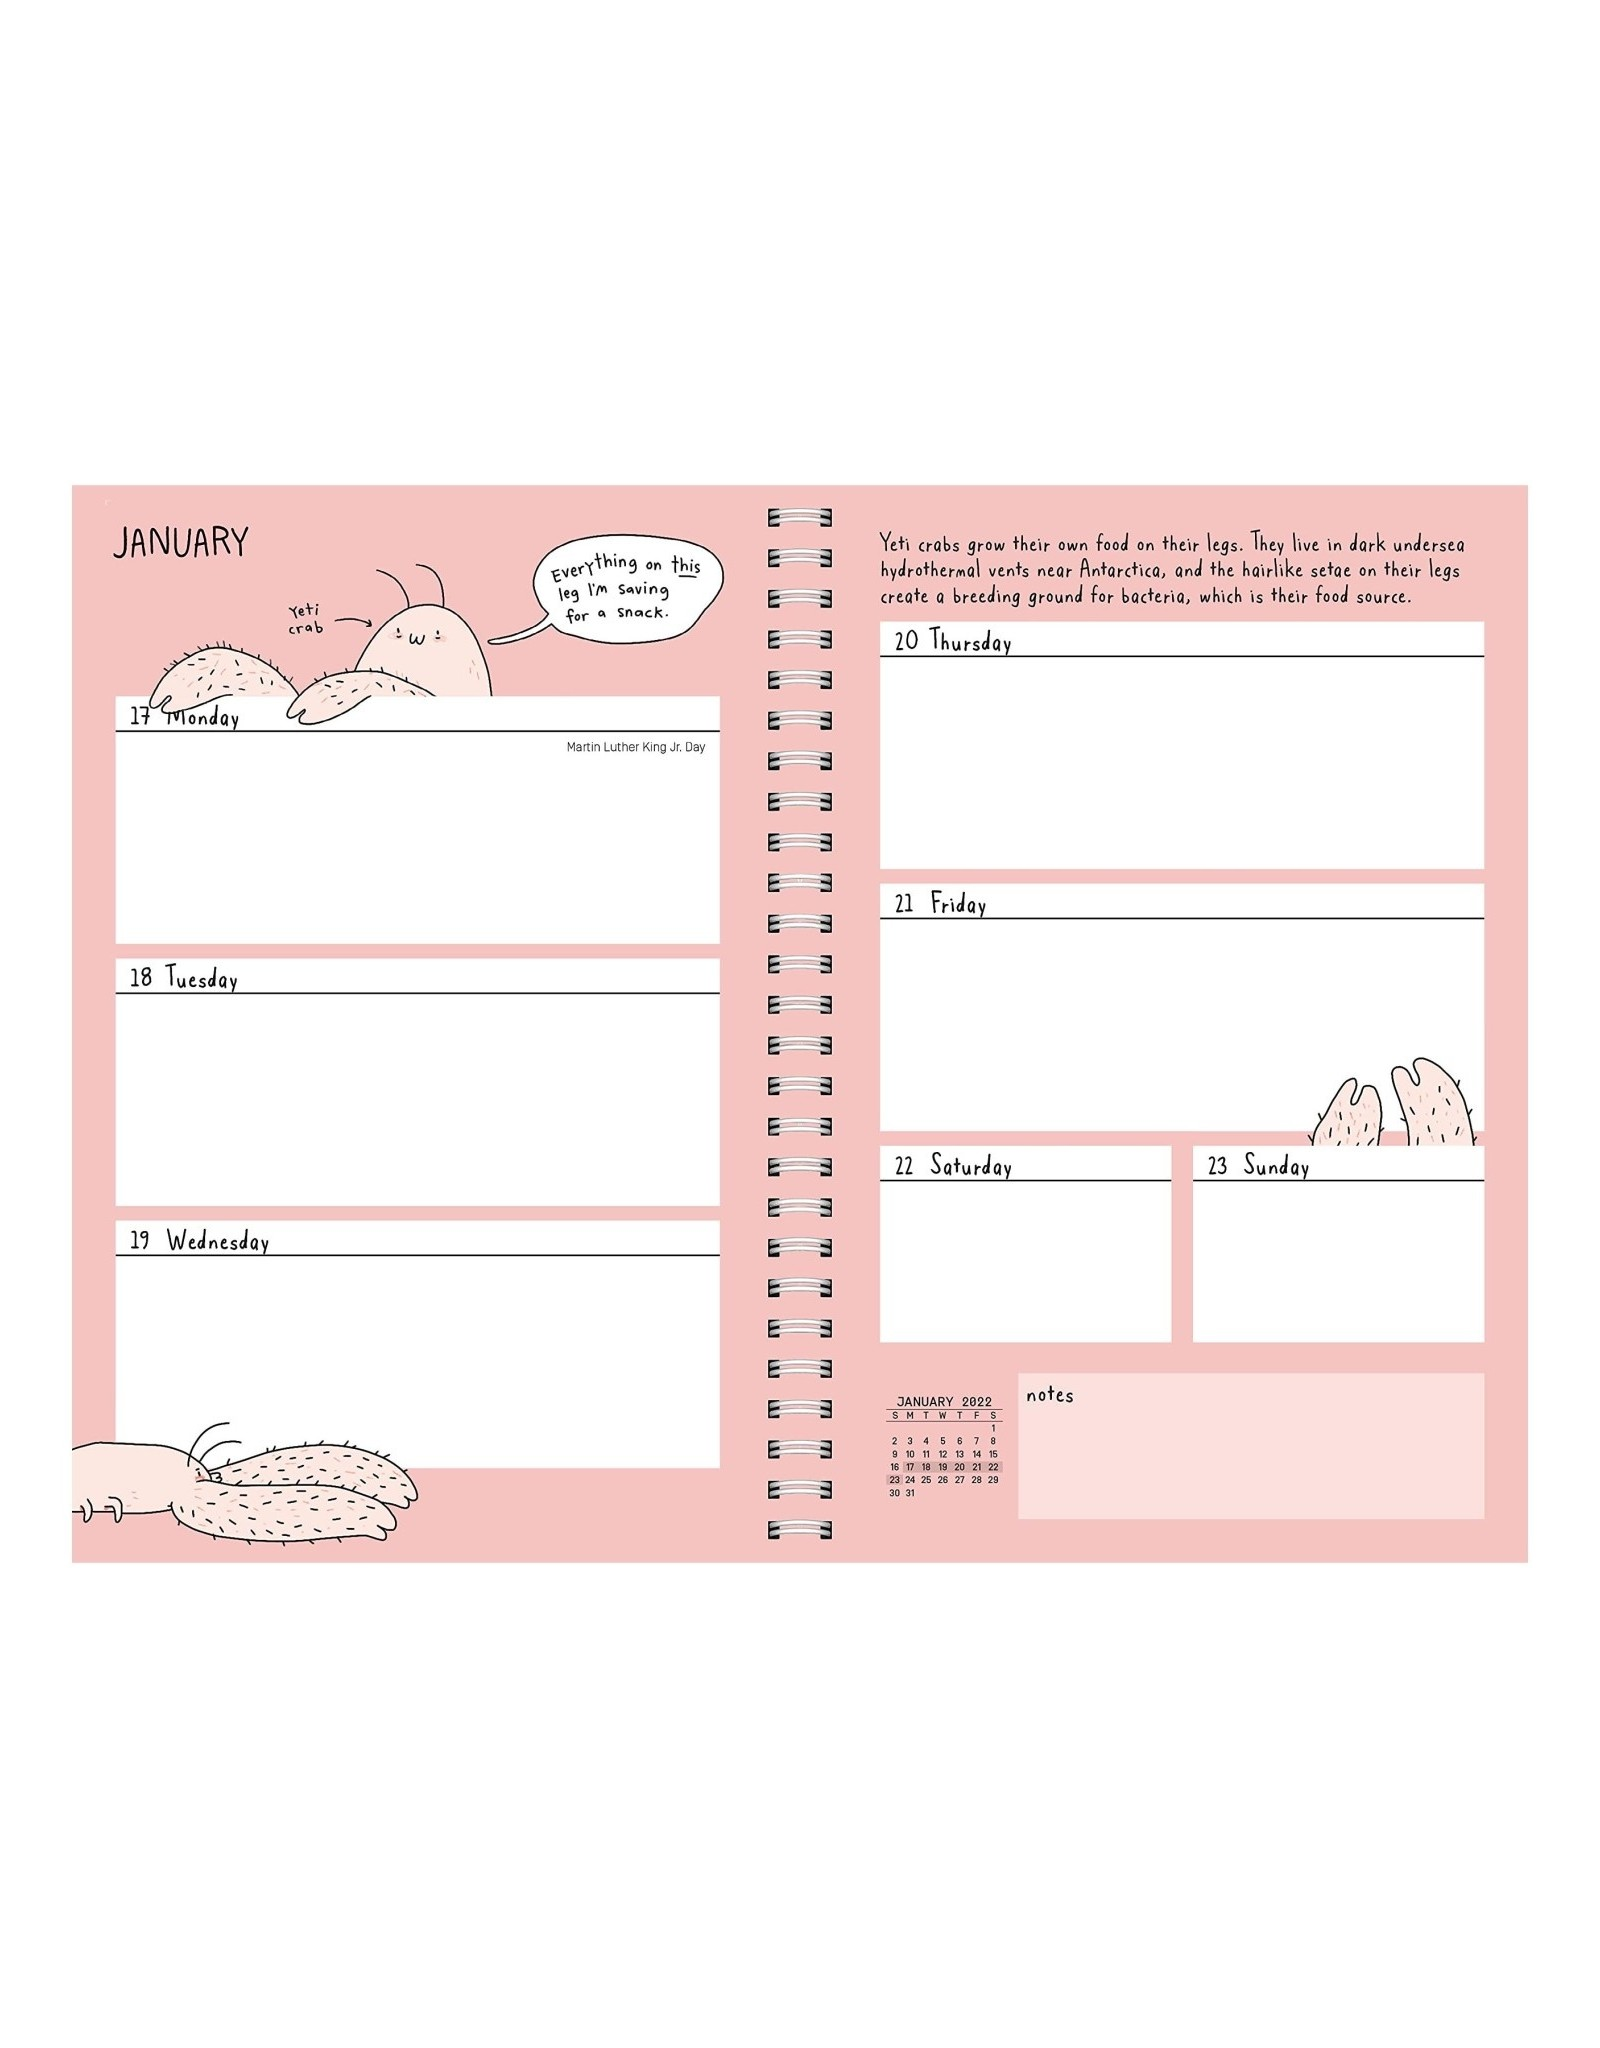 Sad Animal Facts 2022 Weekly Planner